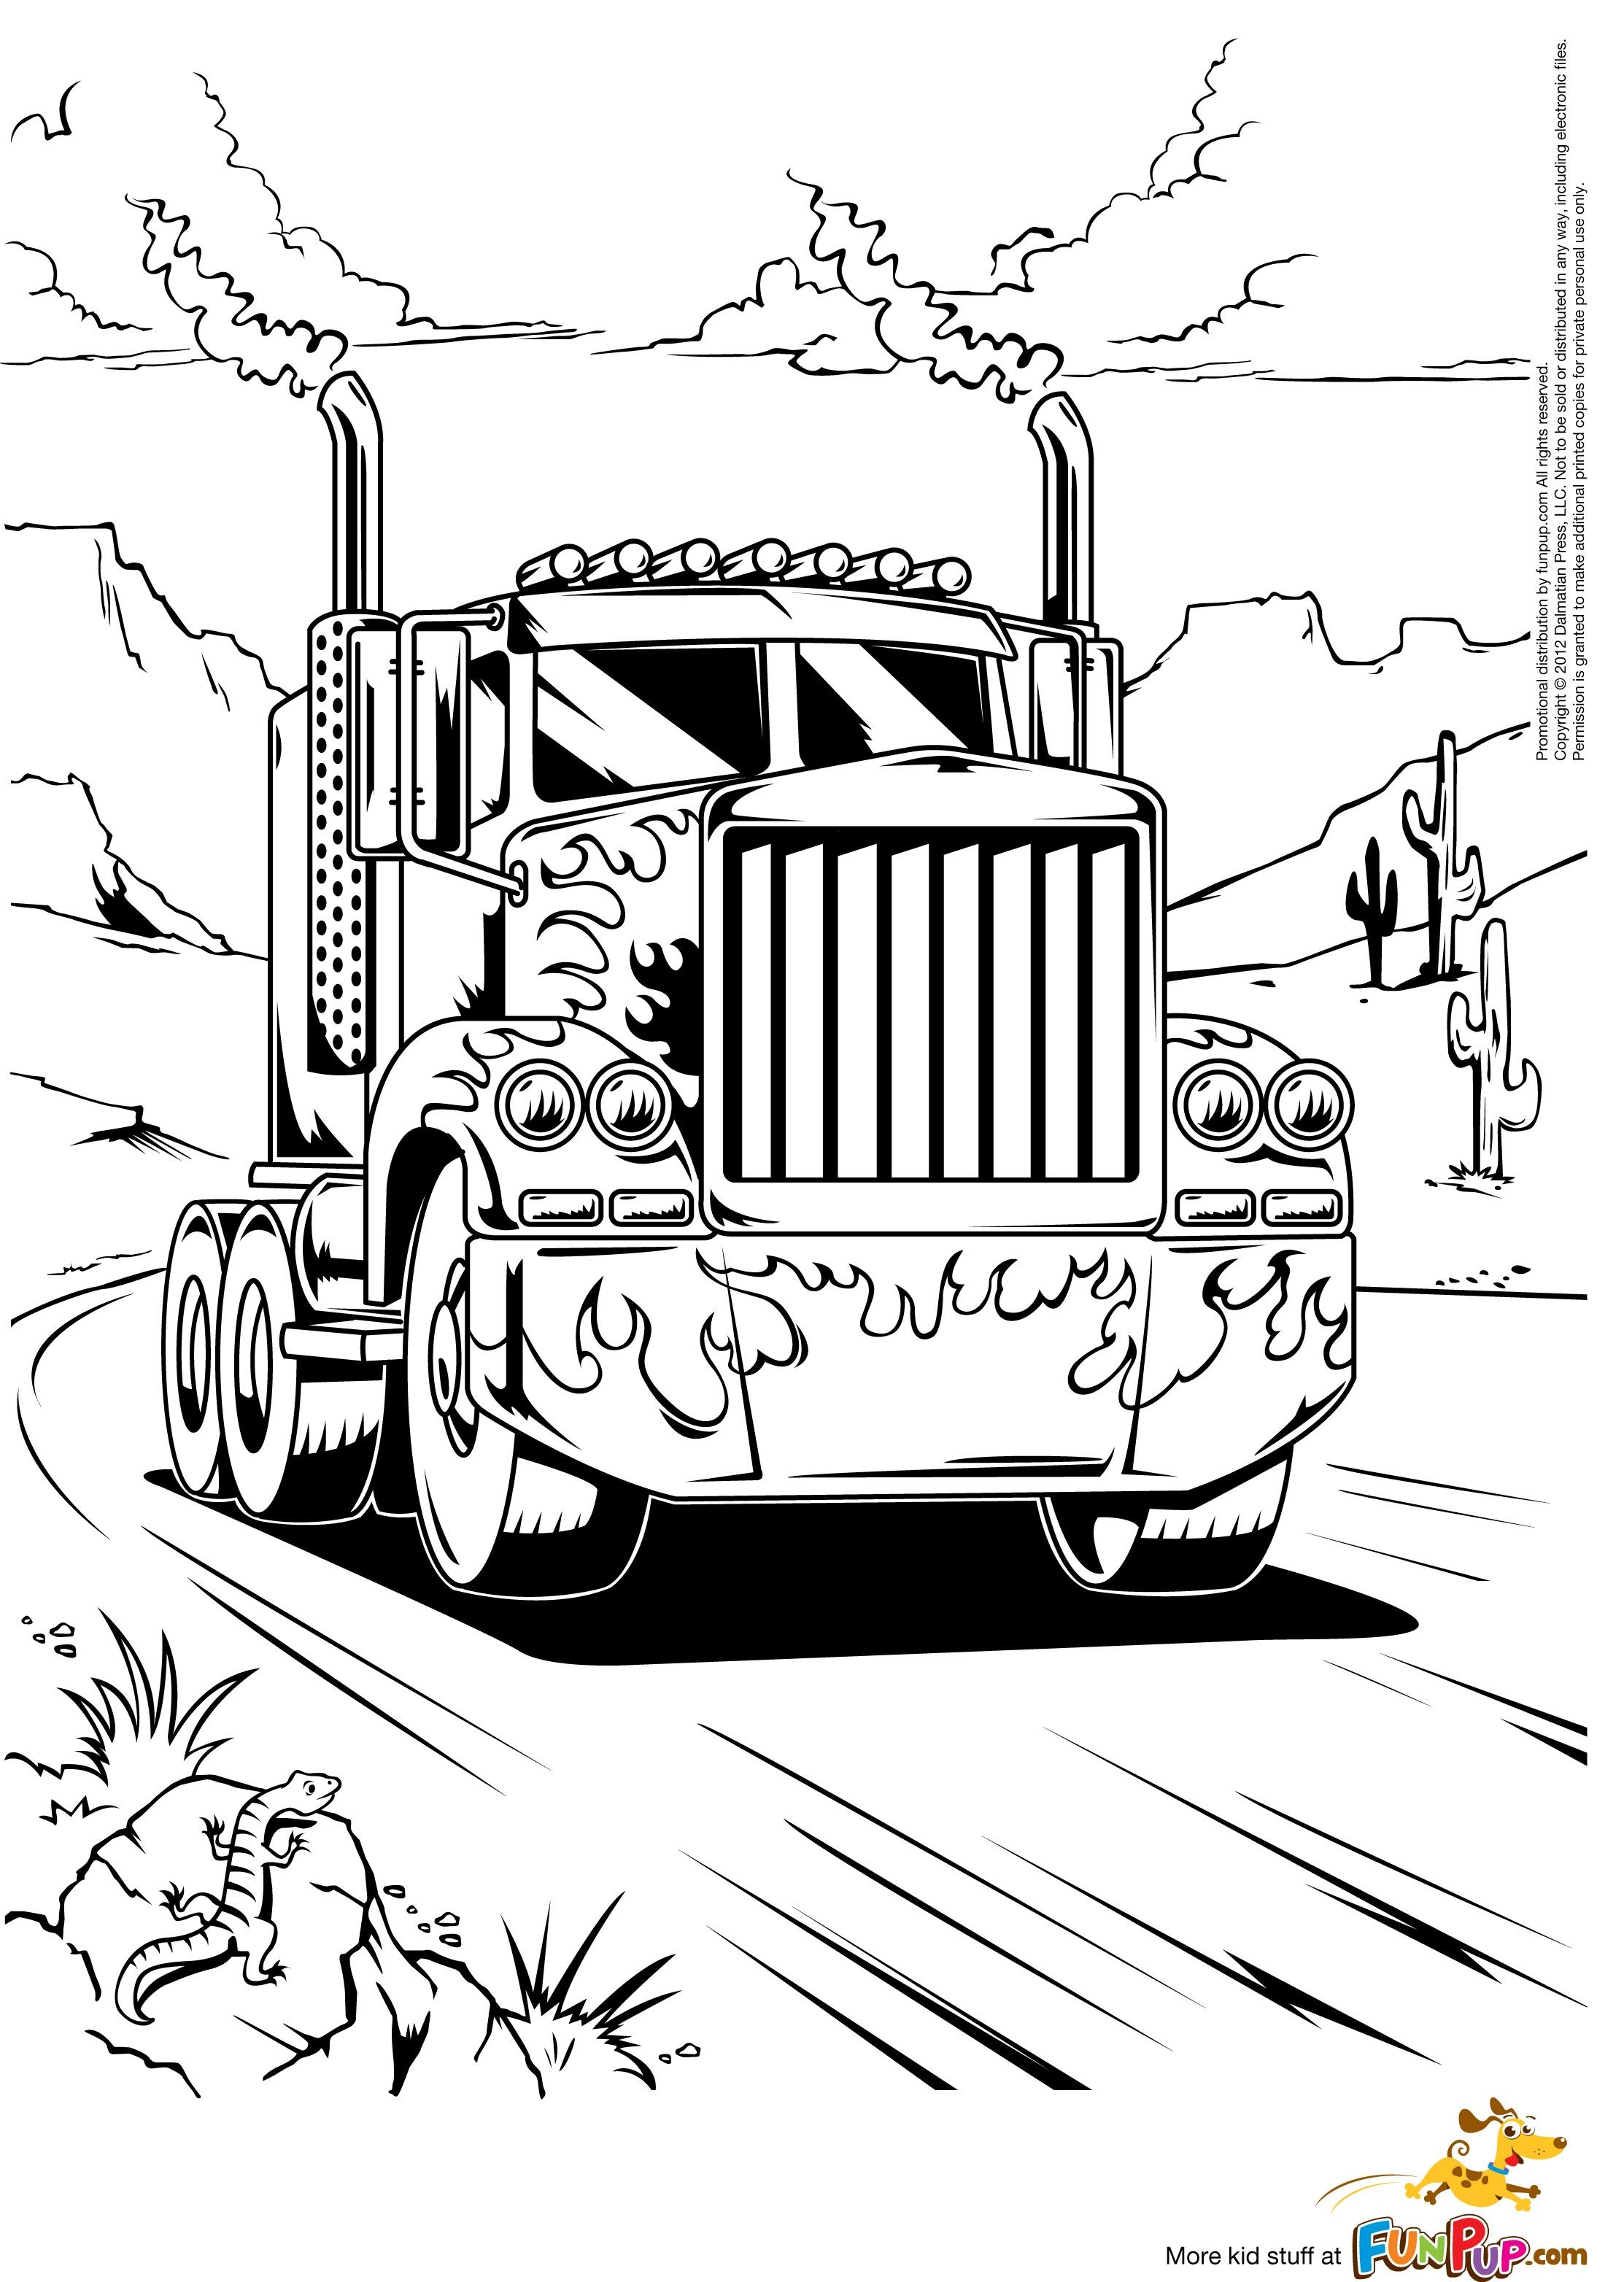 semi trucks coloring pages | Related searches for \'Peterbilt Semi ...